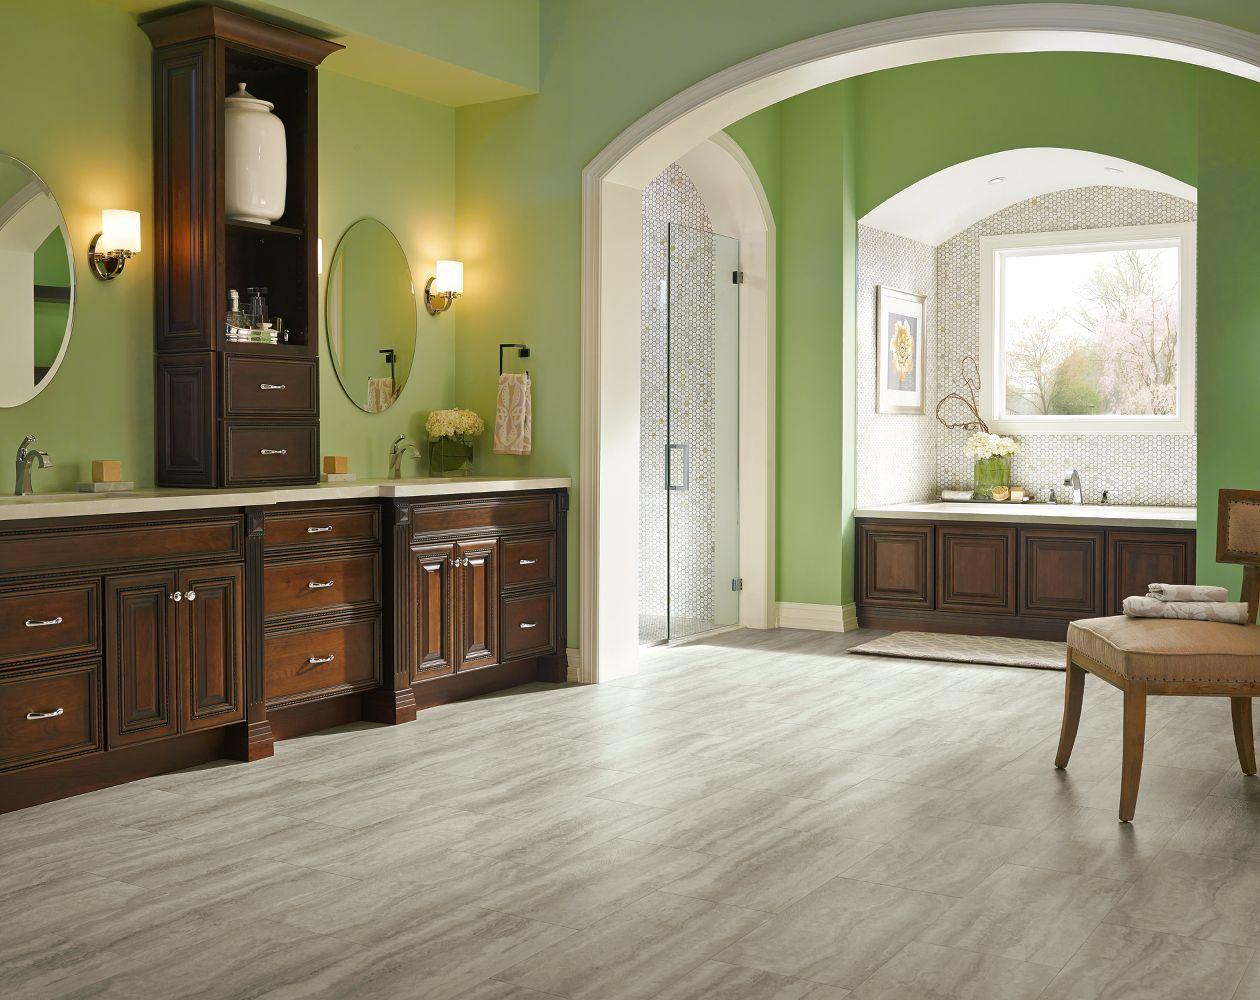 Armstrong LUXE Piazza Travertine Dovetail 8mm x 12 x 24